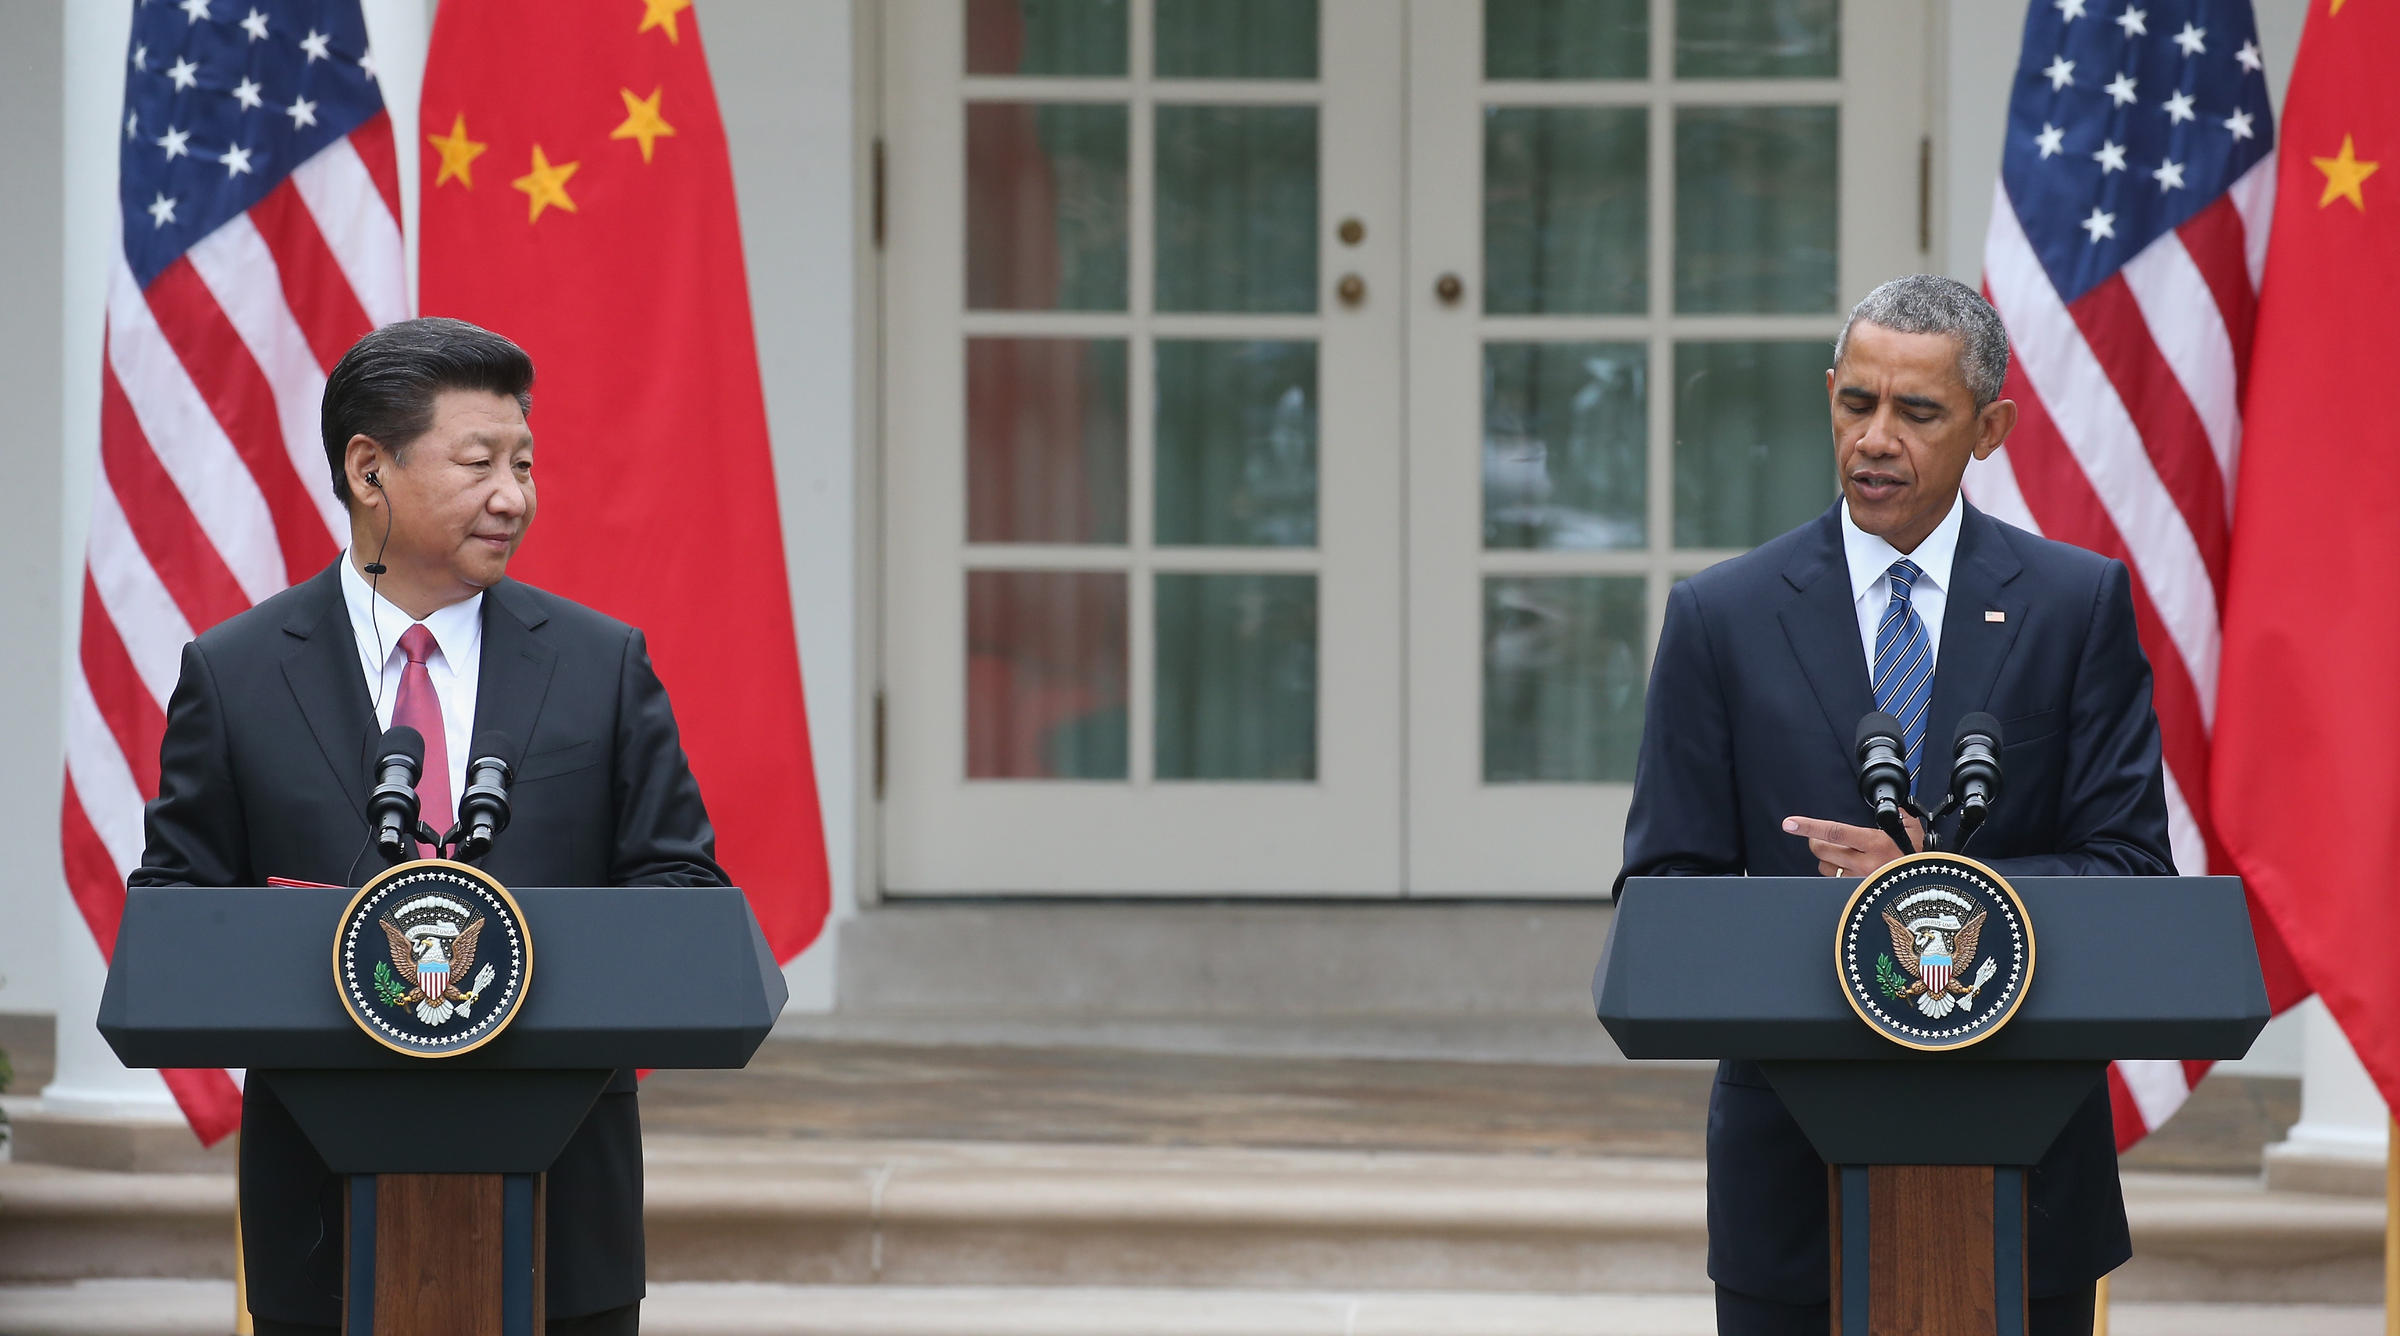 US President Barack Obama and Chinese President Xi Jinping hold a joint-press conference in the Rose Garden as part of a State Visit at the White House in Washington, DC, September 25, 2015. (Photo courtesy: MARK WILSON GETTY IMAGES)